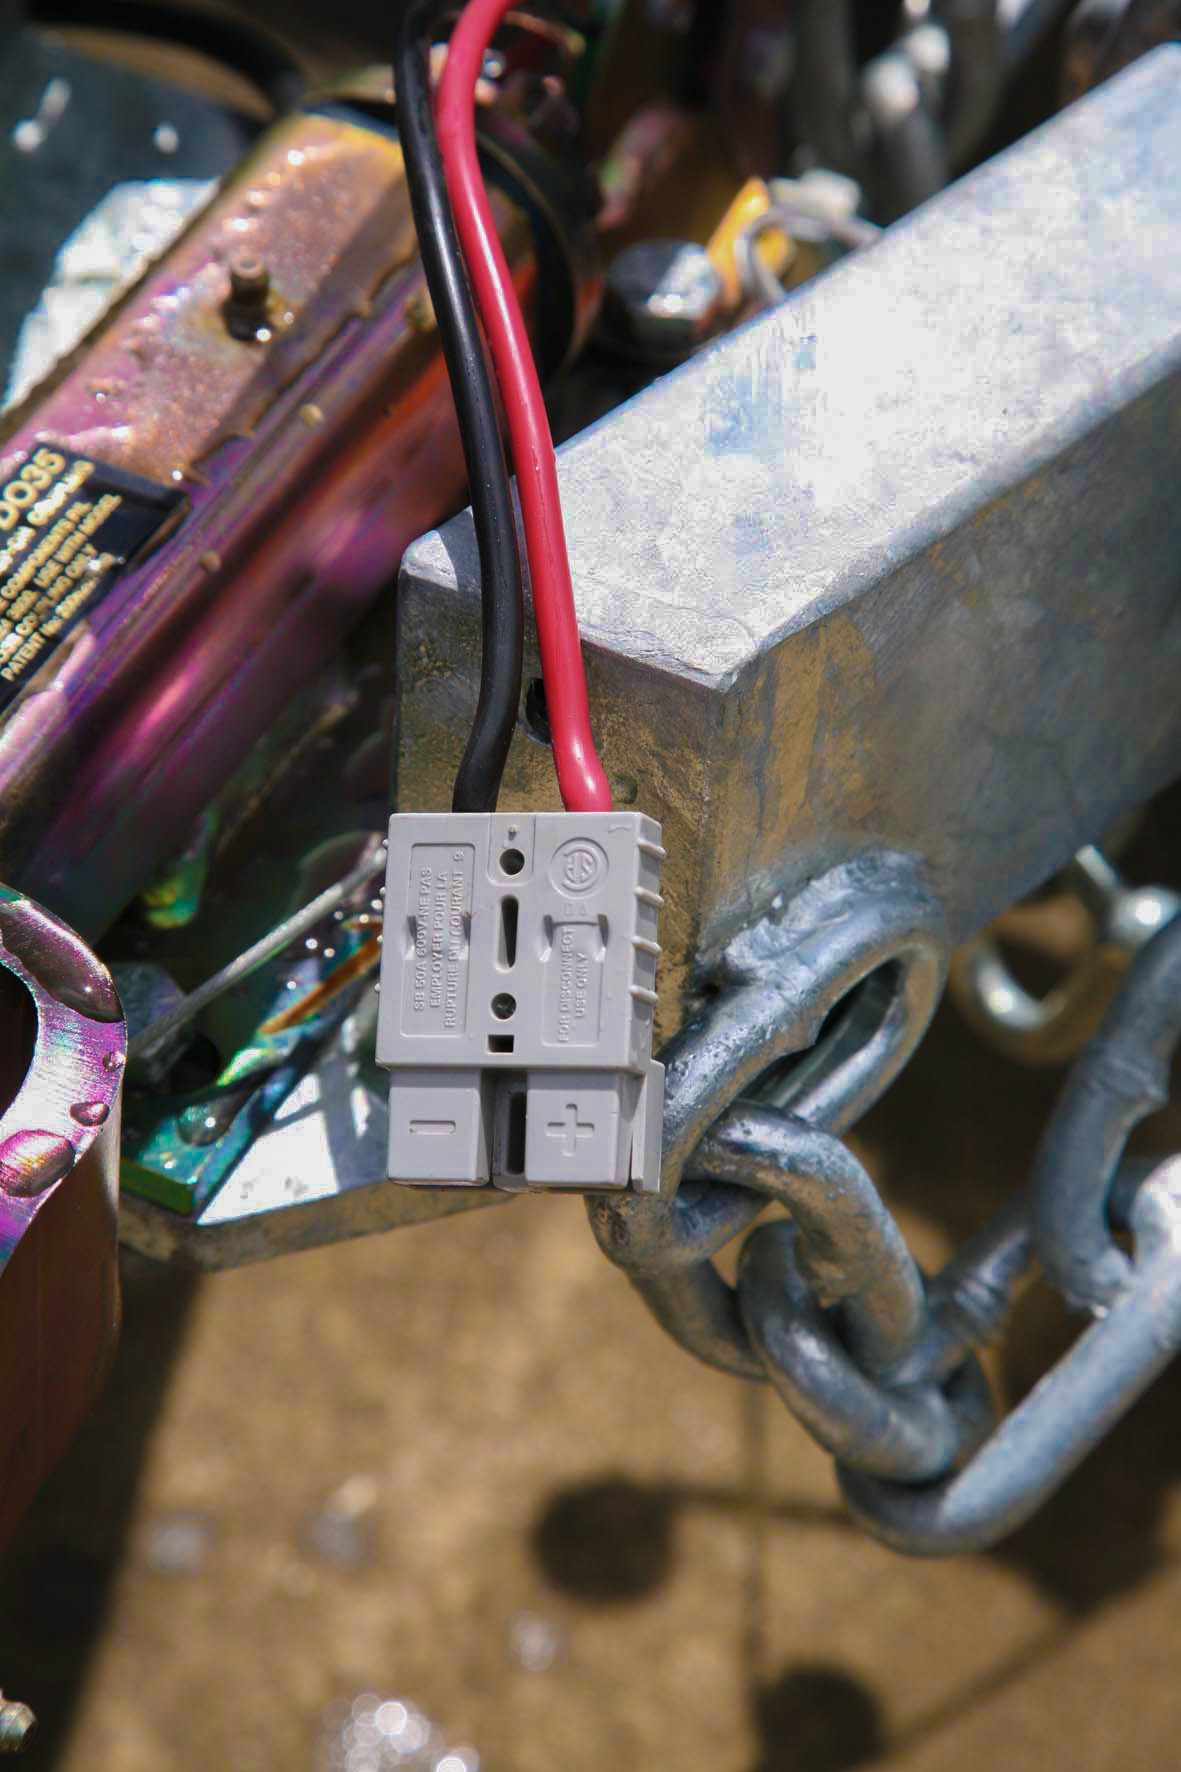 Caravan Electrical Systems Without A Hitch House Wiring Switch Loop Along With The Basic 12v System Used In Kingswood Viscount Era Long Gone Is Battery That Was Charged Only By Tow Vehicles Alternator